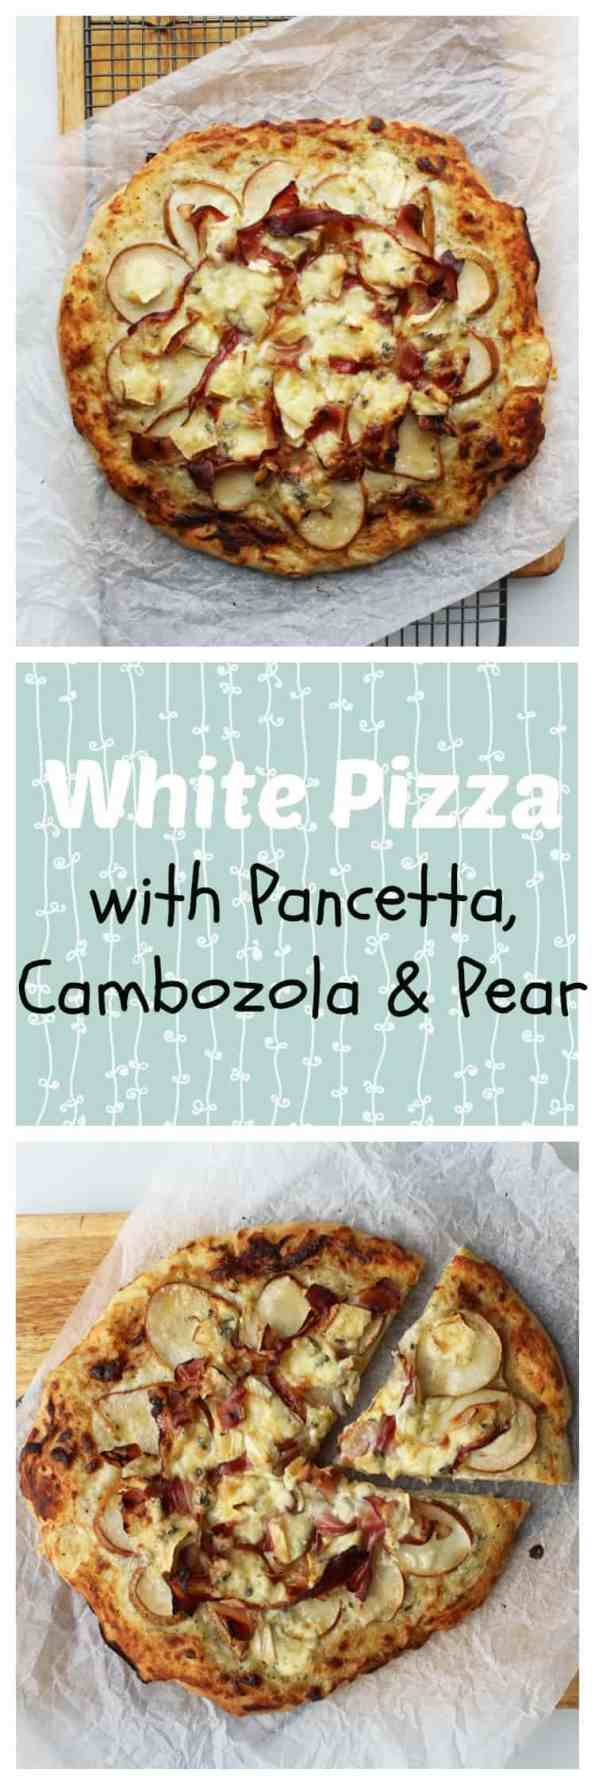 White pizza with pancetta, cambozola & pear